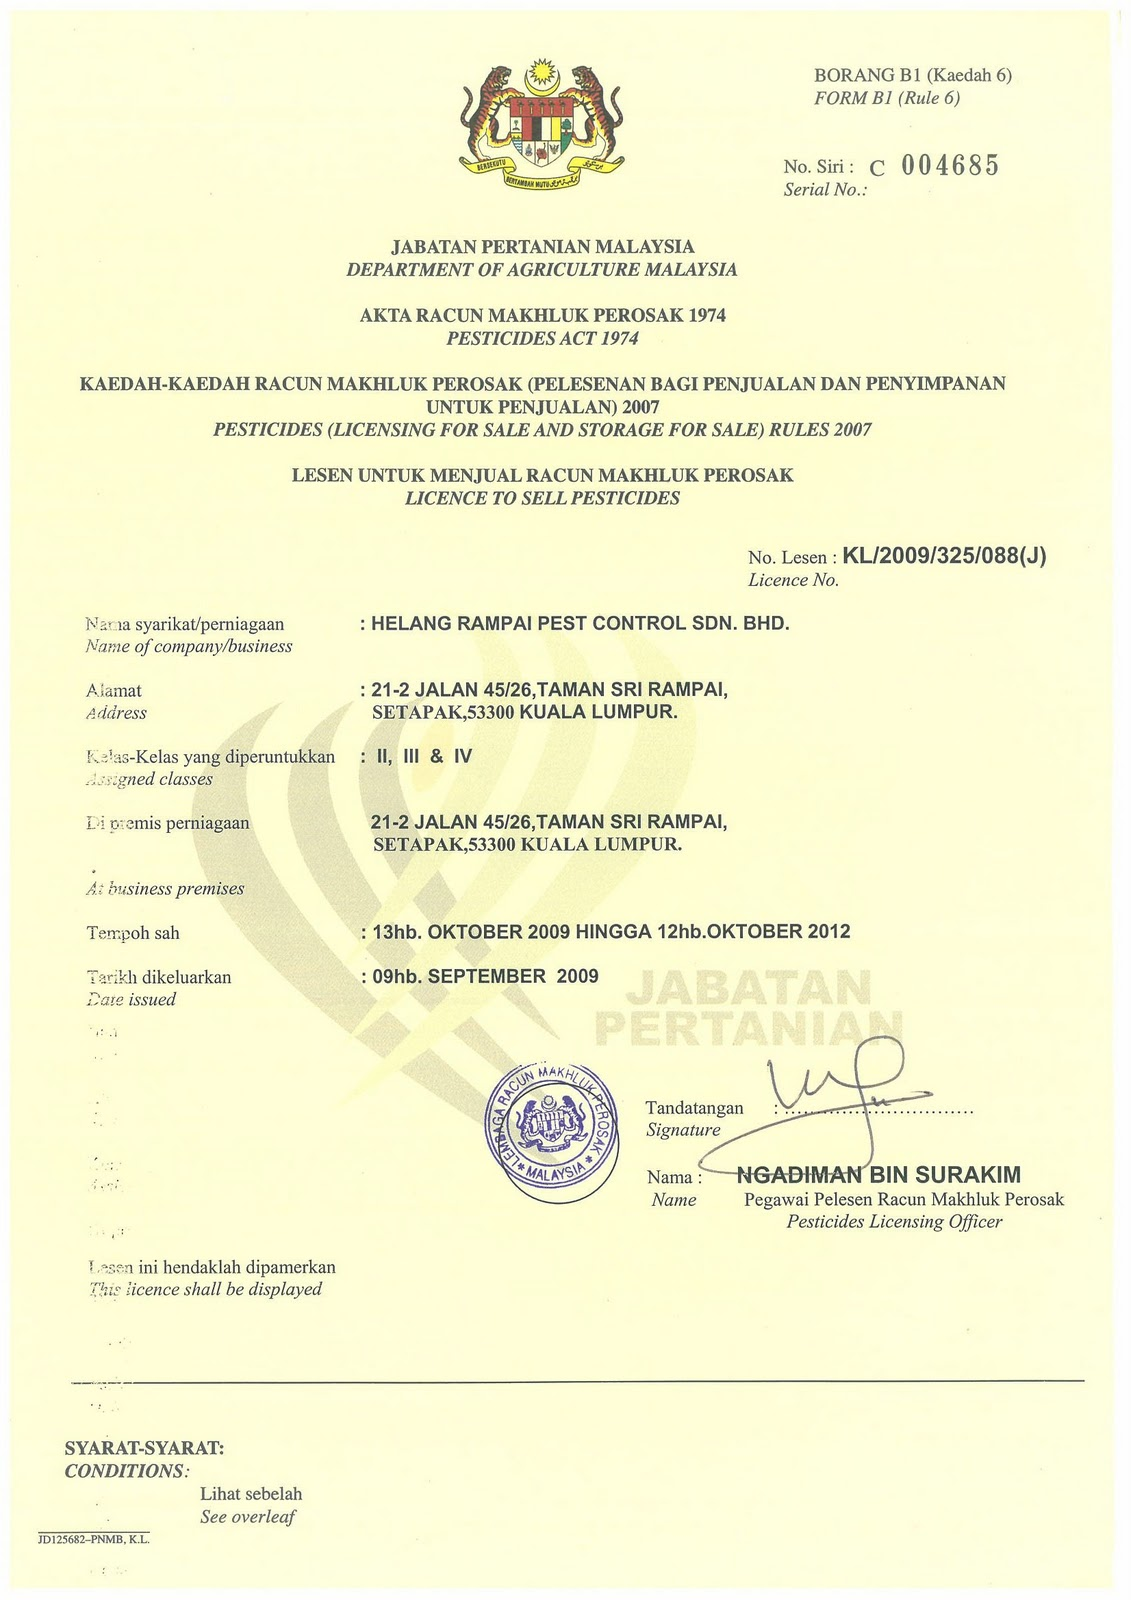 Helang rampai pest control sdn bhd profile certification by the pesticide board of malaysia 1betcityfo Image collections